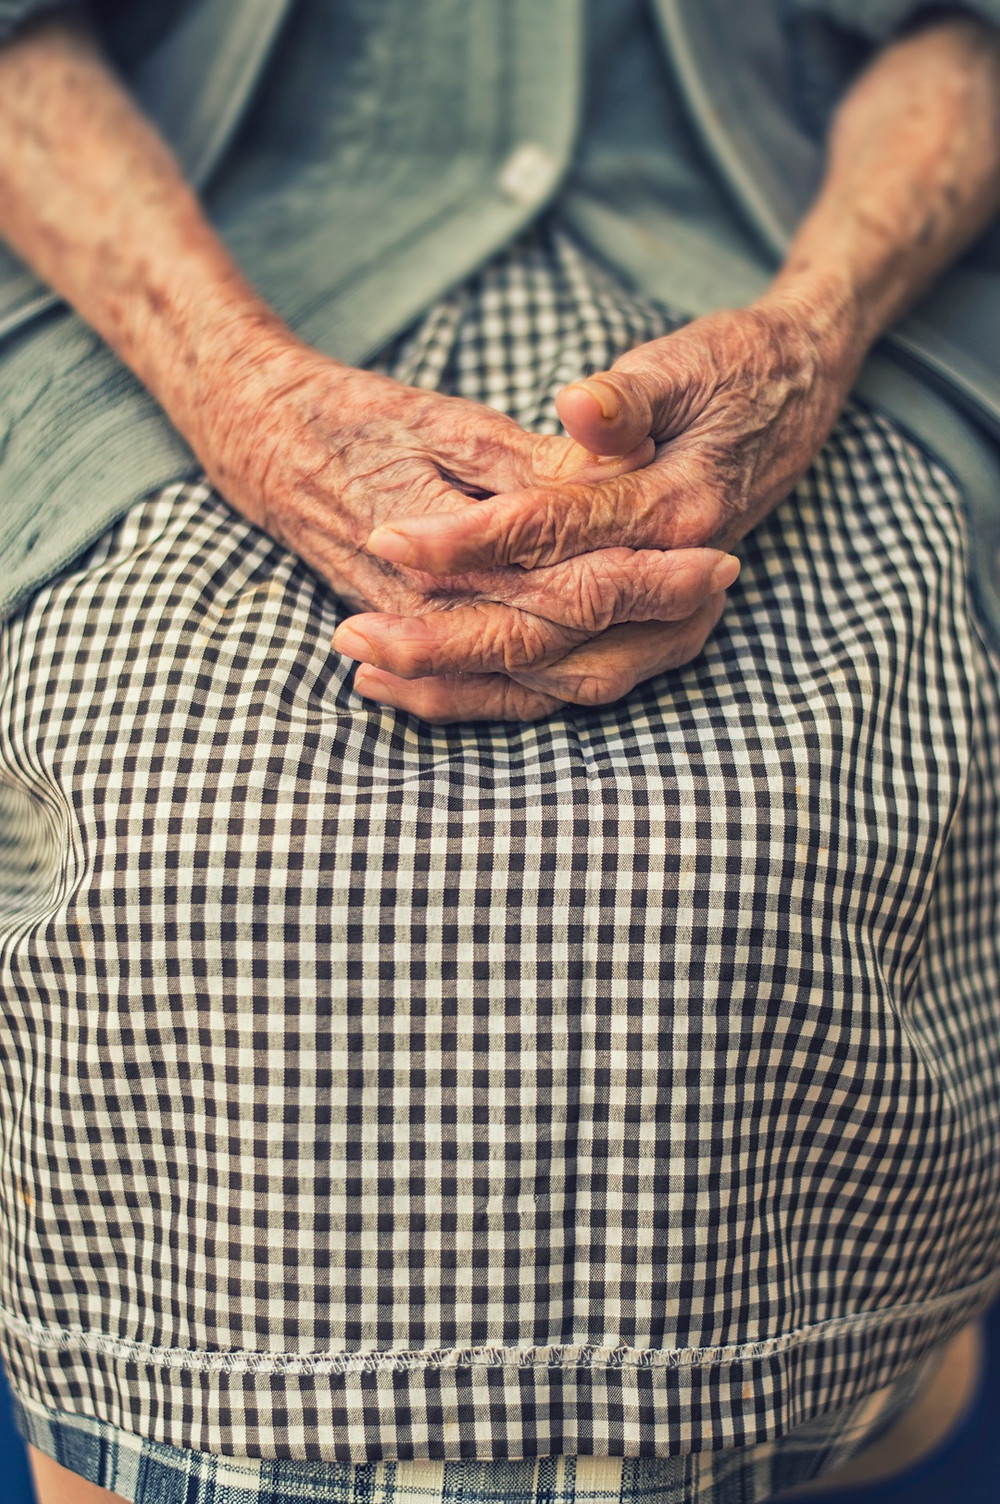 Old Woman's Hands - Whispering Dust Poem